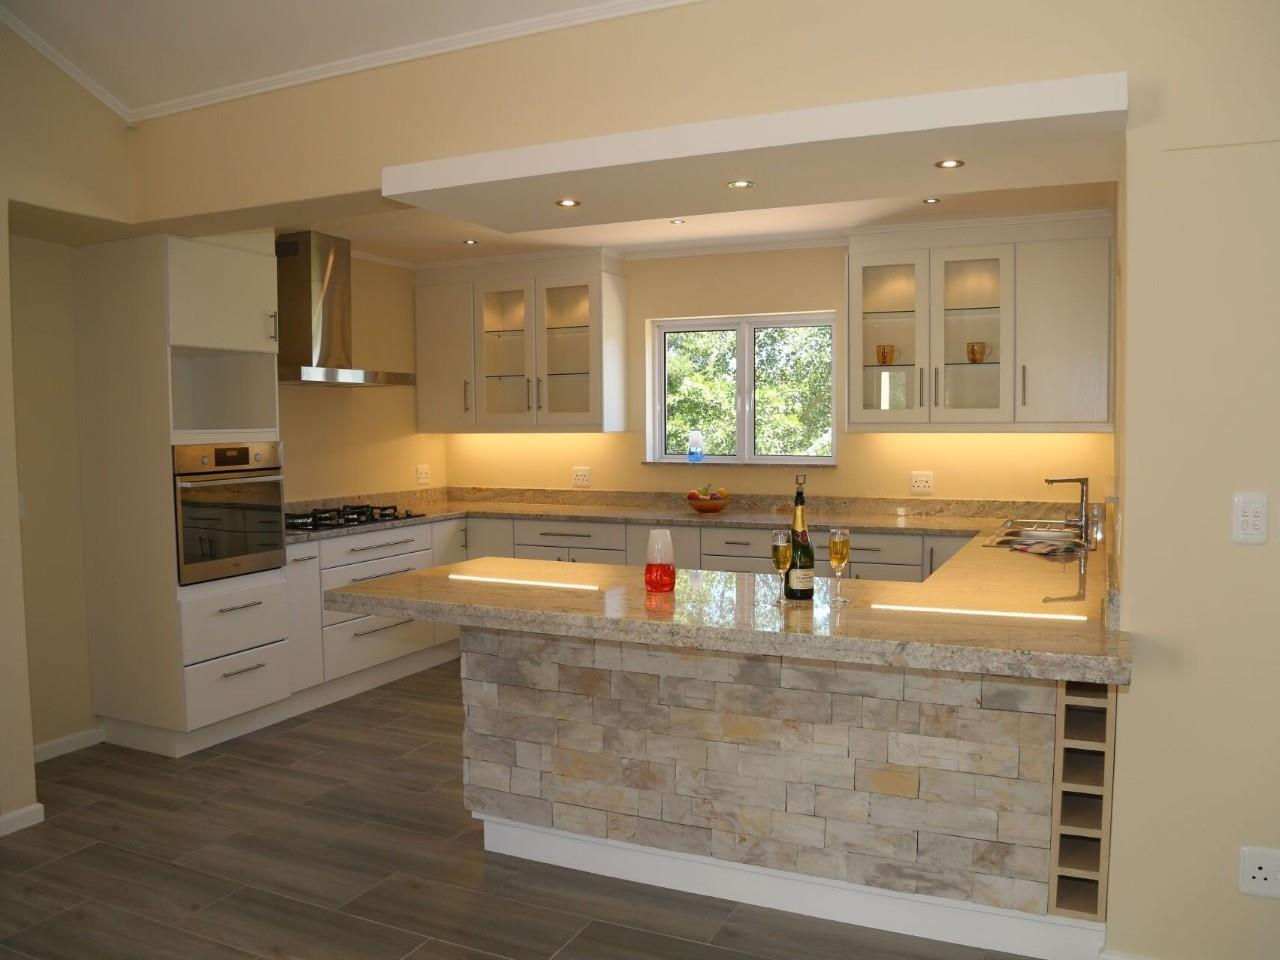 3 Bedroom House For Sale in Hunters Estate